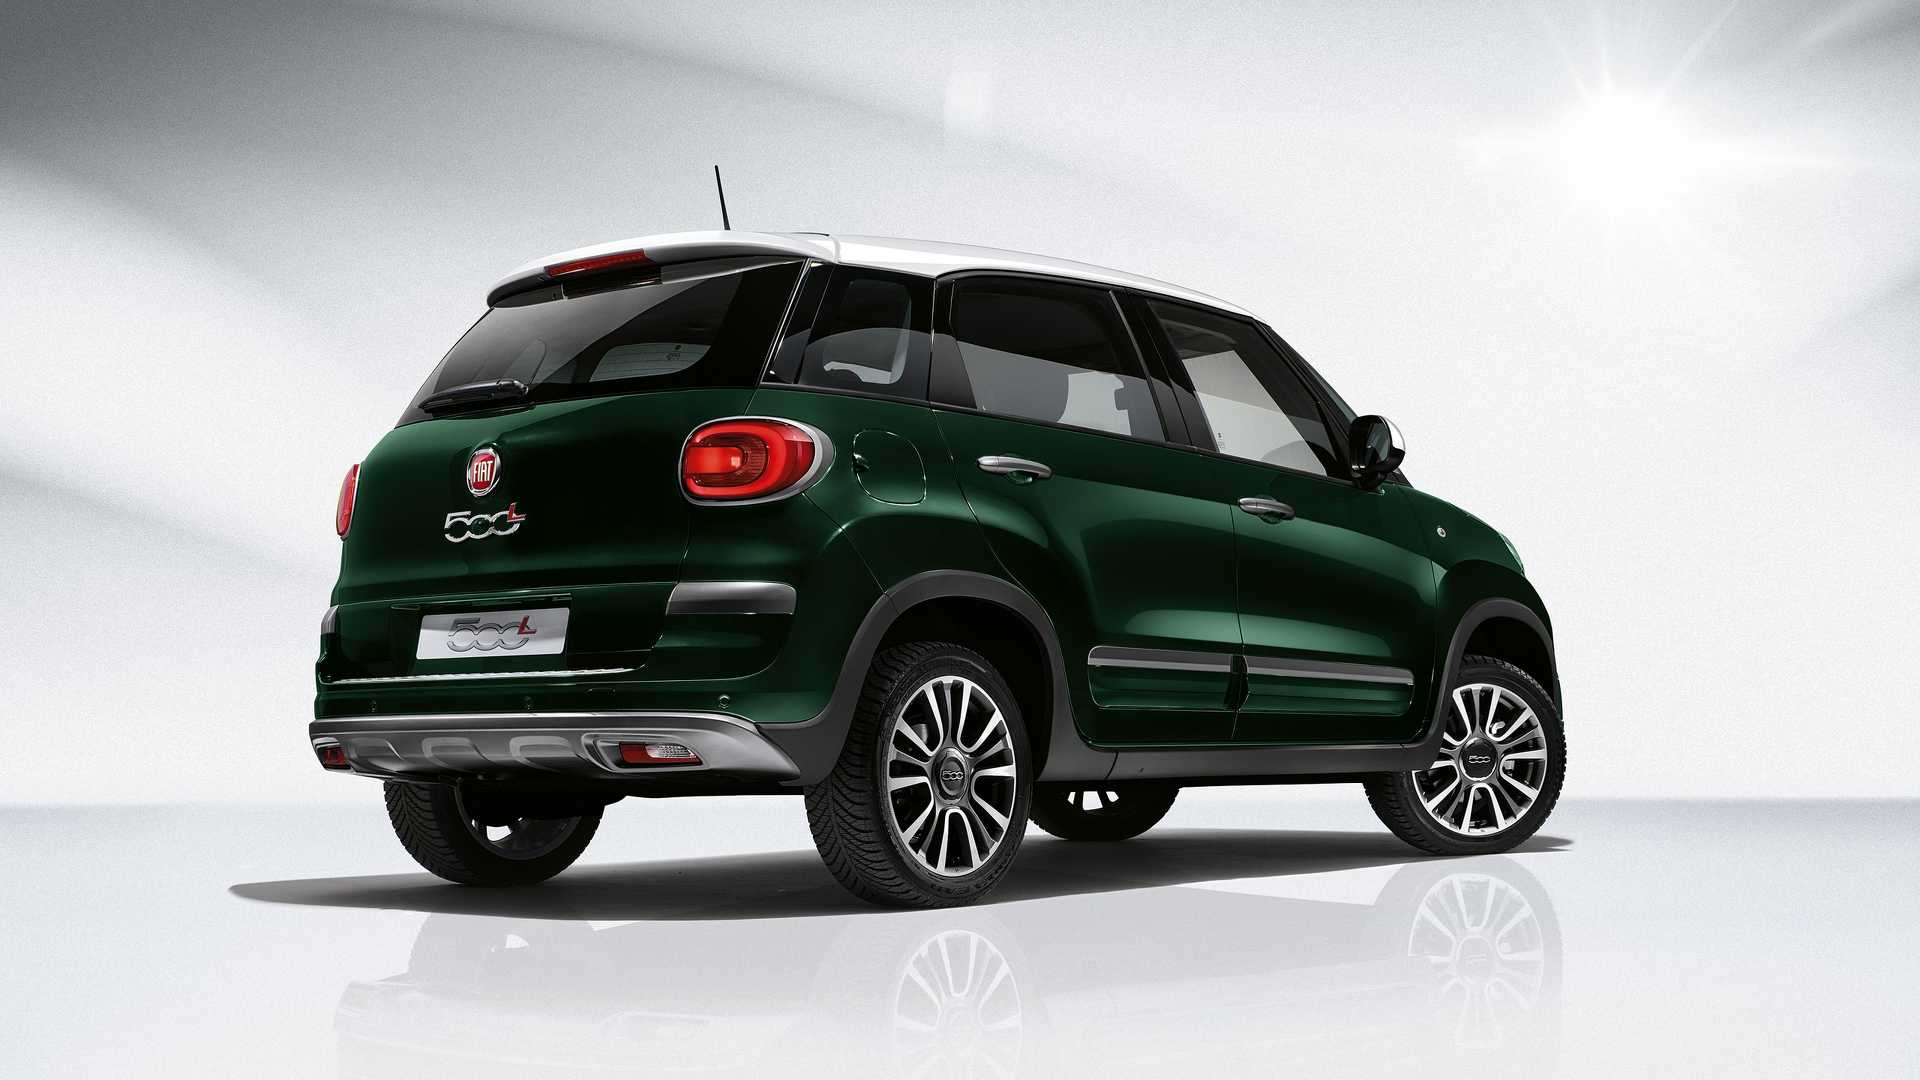 2018_Fiat_500L_cross_facelift_13